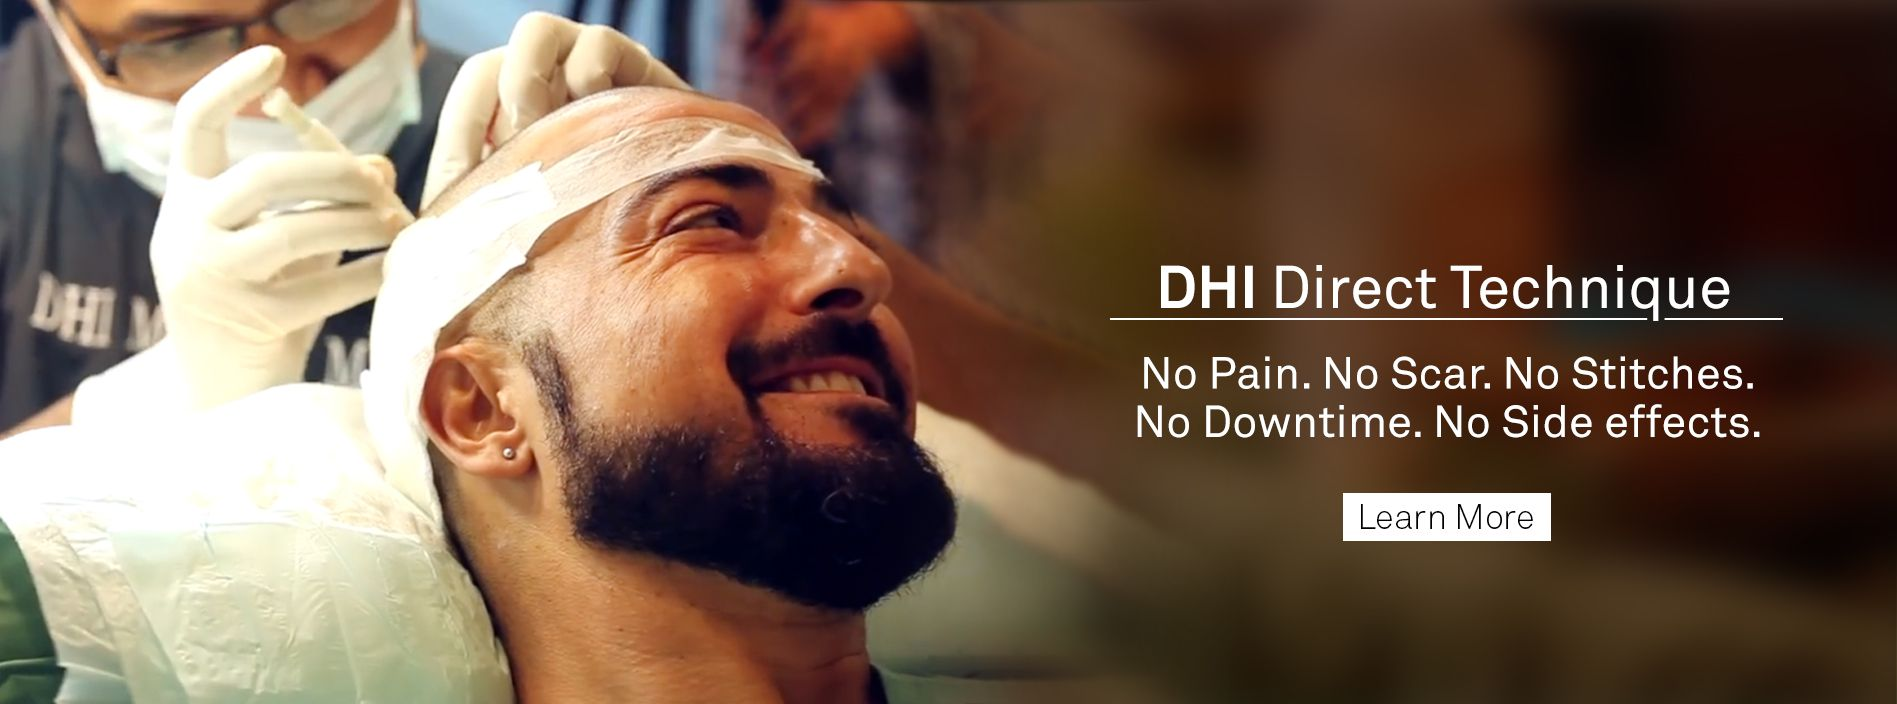 dhi hair transplant technology